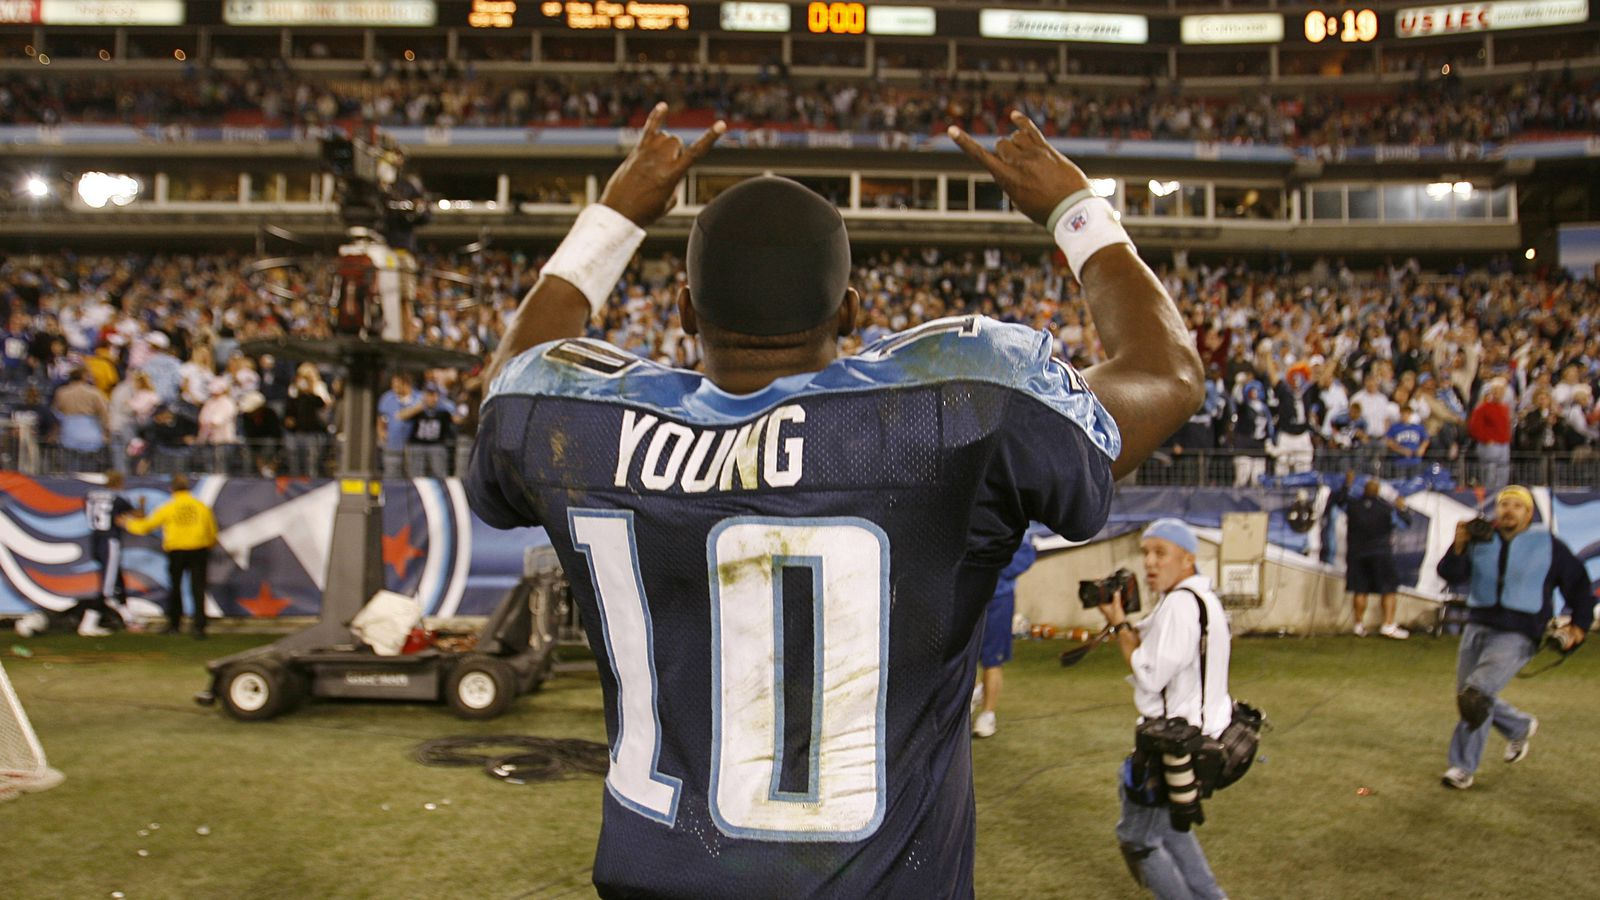 2017 Texas Basketball Recruiting Longhorn Class Ranked 4: Longhorn Legend Vince Young Pursuing Return To Football